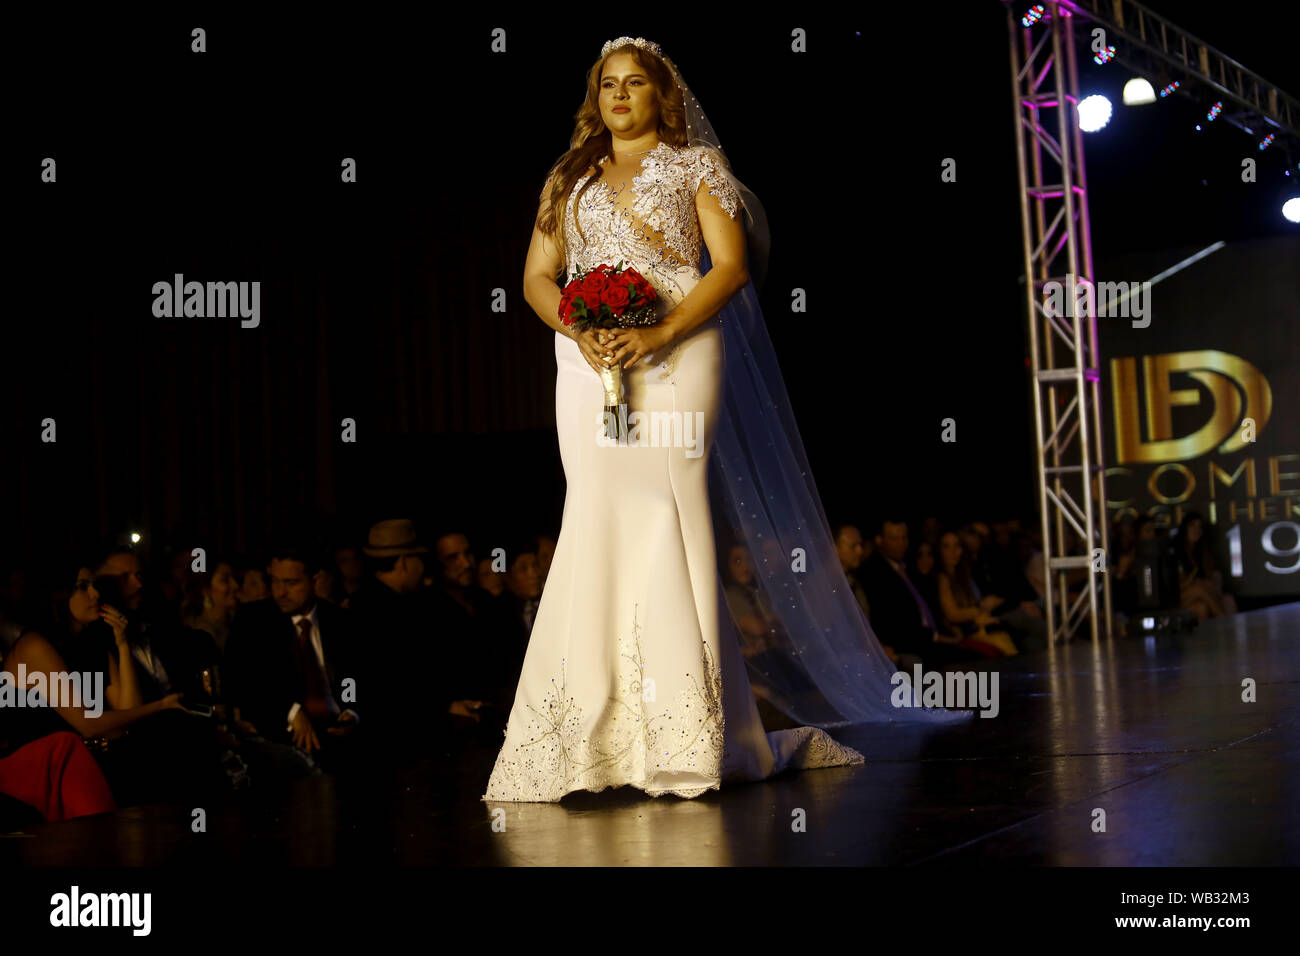 Valencia Carabobo Venezuela 22nd Aug 2019 August 23 2019 A Model Participates In The Fashion Show